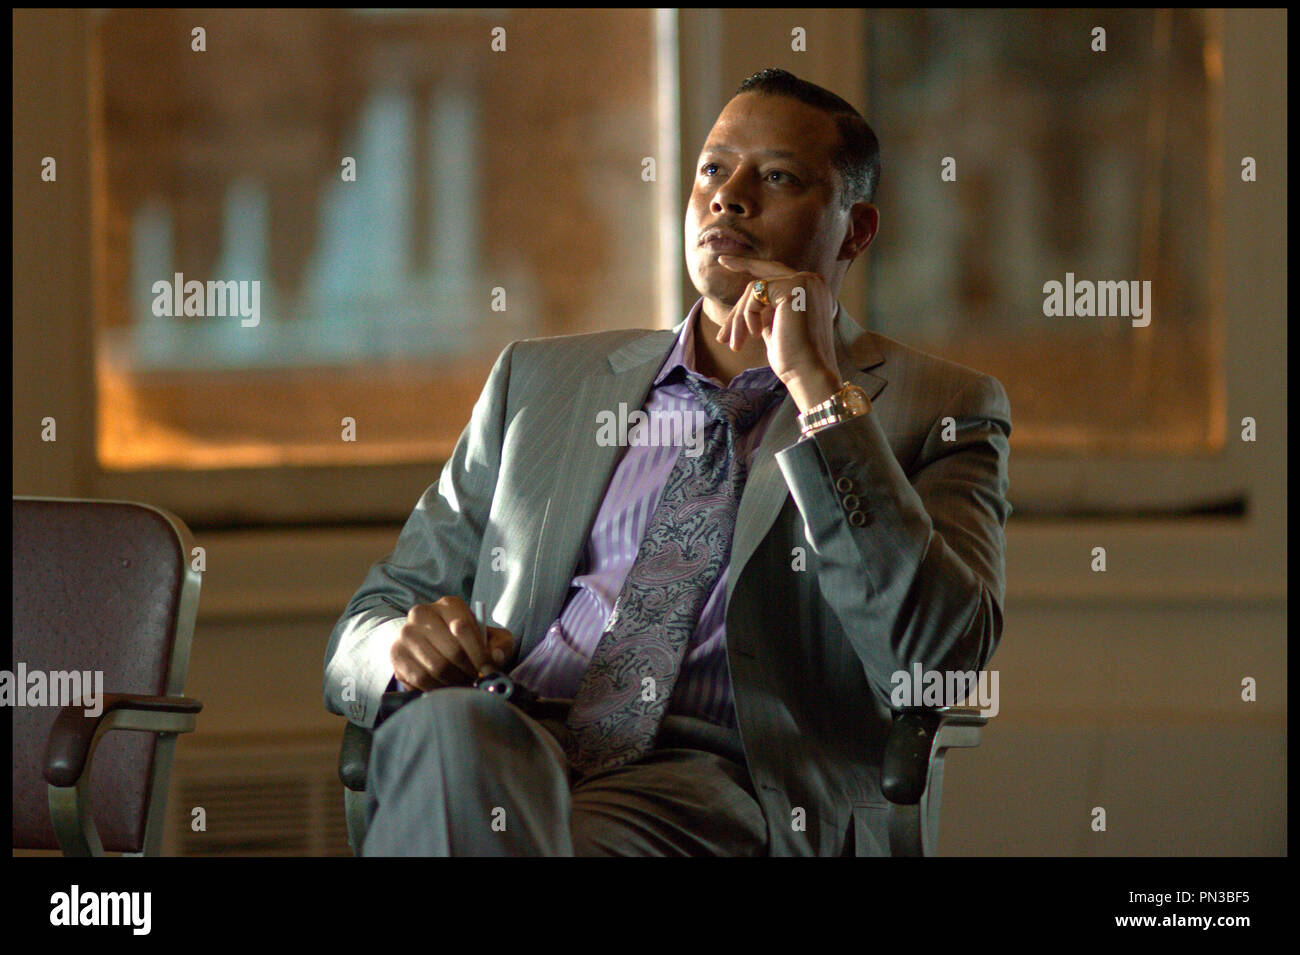 Niels Arden Oplev Stock Photos & Niels Arden Oplev Stock Images - Alamy